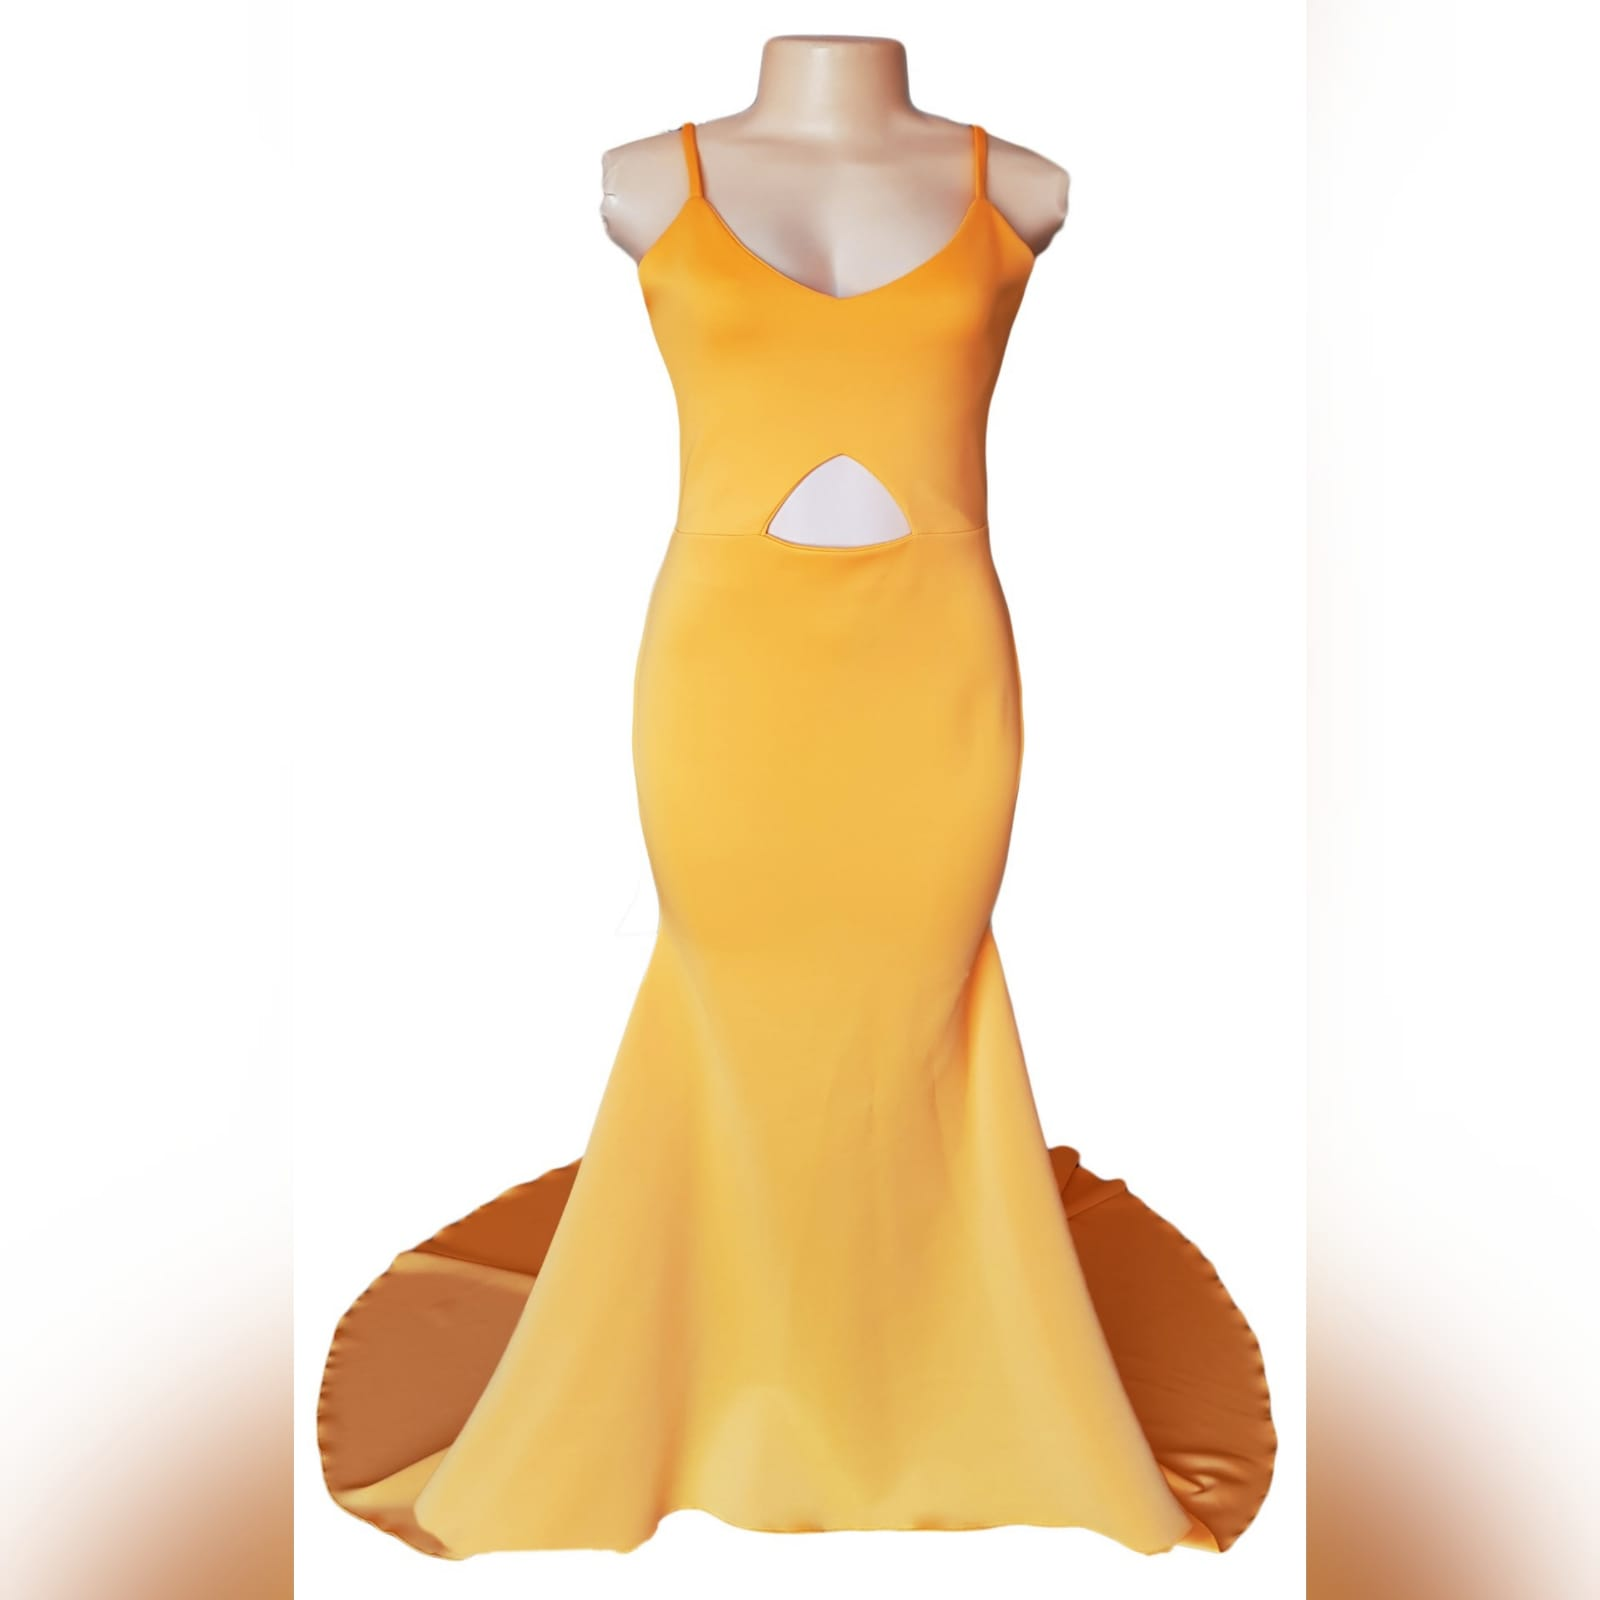 Yellow soft mermaid prom dress 8 yellow soft mermaid prom dress with a triangle tummy opening. V neckline and an open back with crossed spaghetti straps and a train.